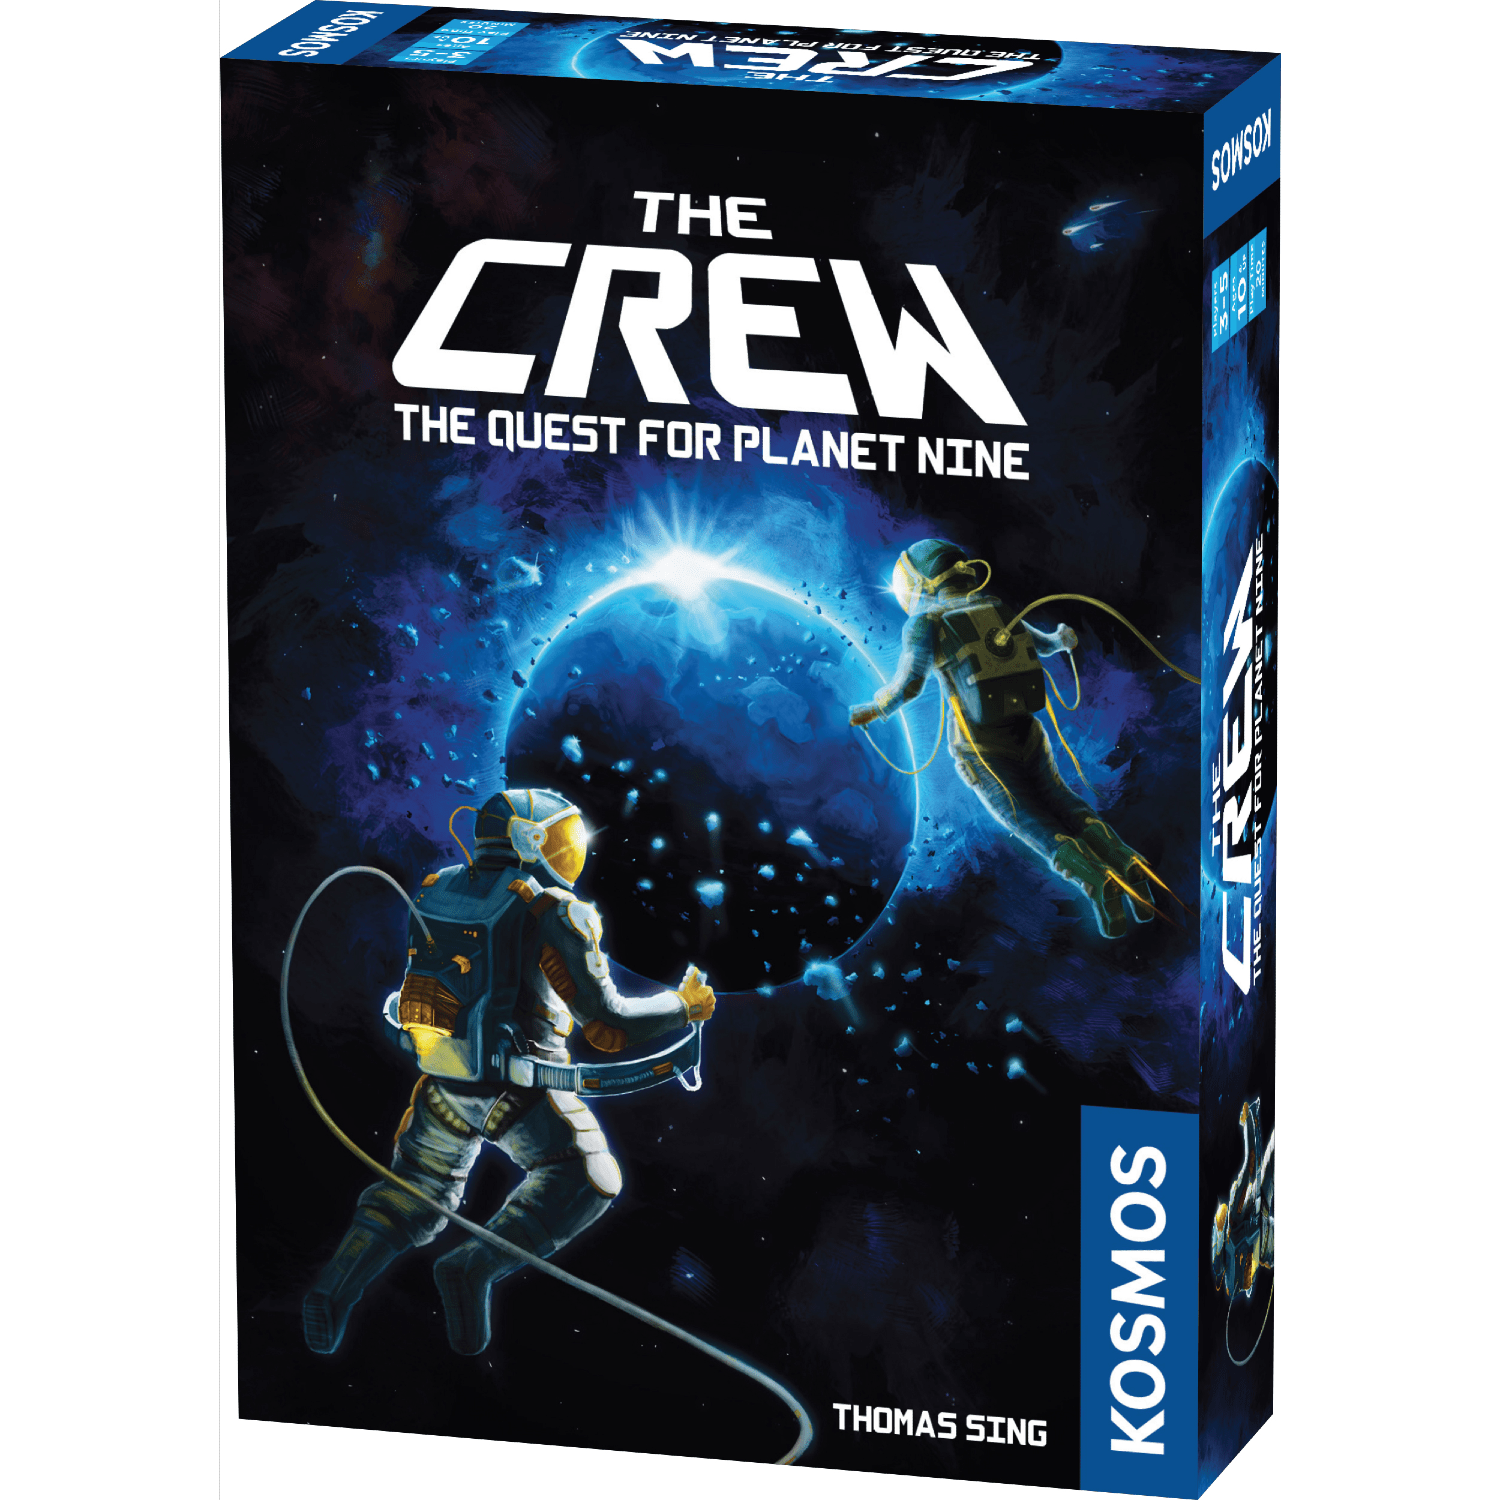 The Crew Thames & Kosmos Board Games